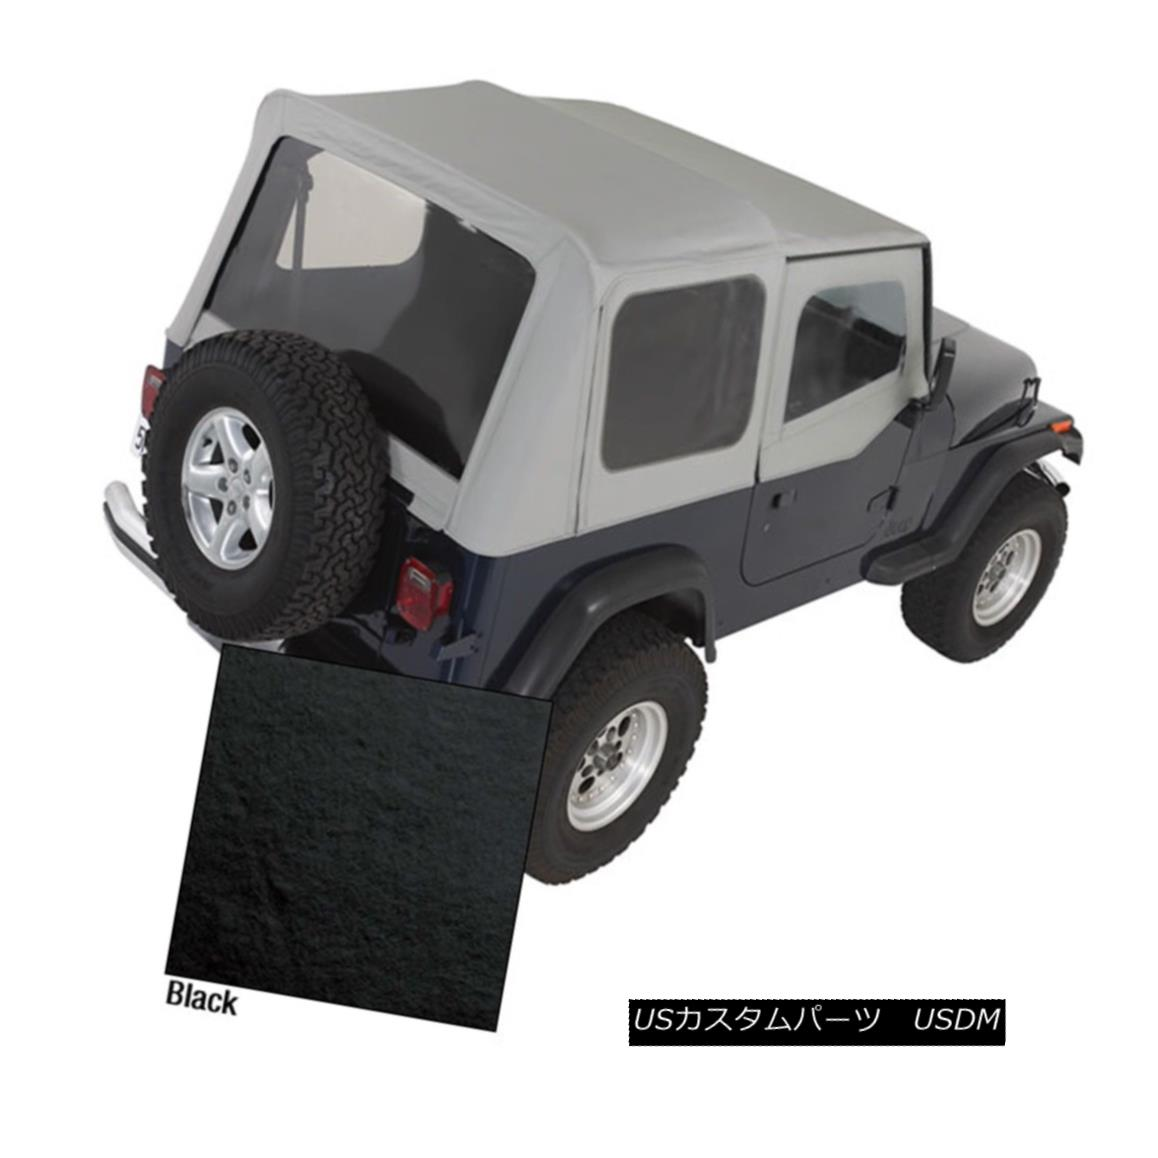 幌・ソフトトップ Rugged Ridge 13721.15 Replacement Soft Top Fits 88-95 Wrangler (YJ) Rugged Ridge 13721.15交換用ソフトトップ88-95 Wrangler(YJ)